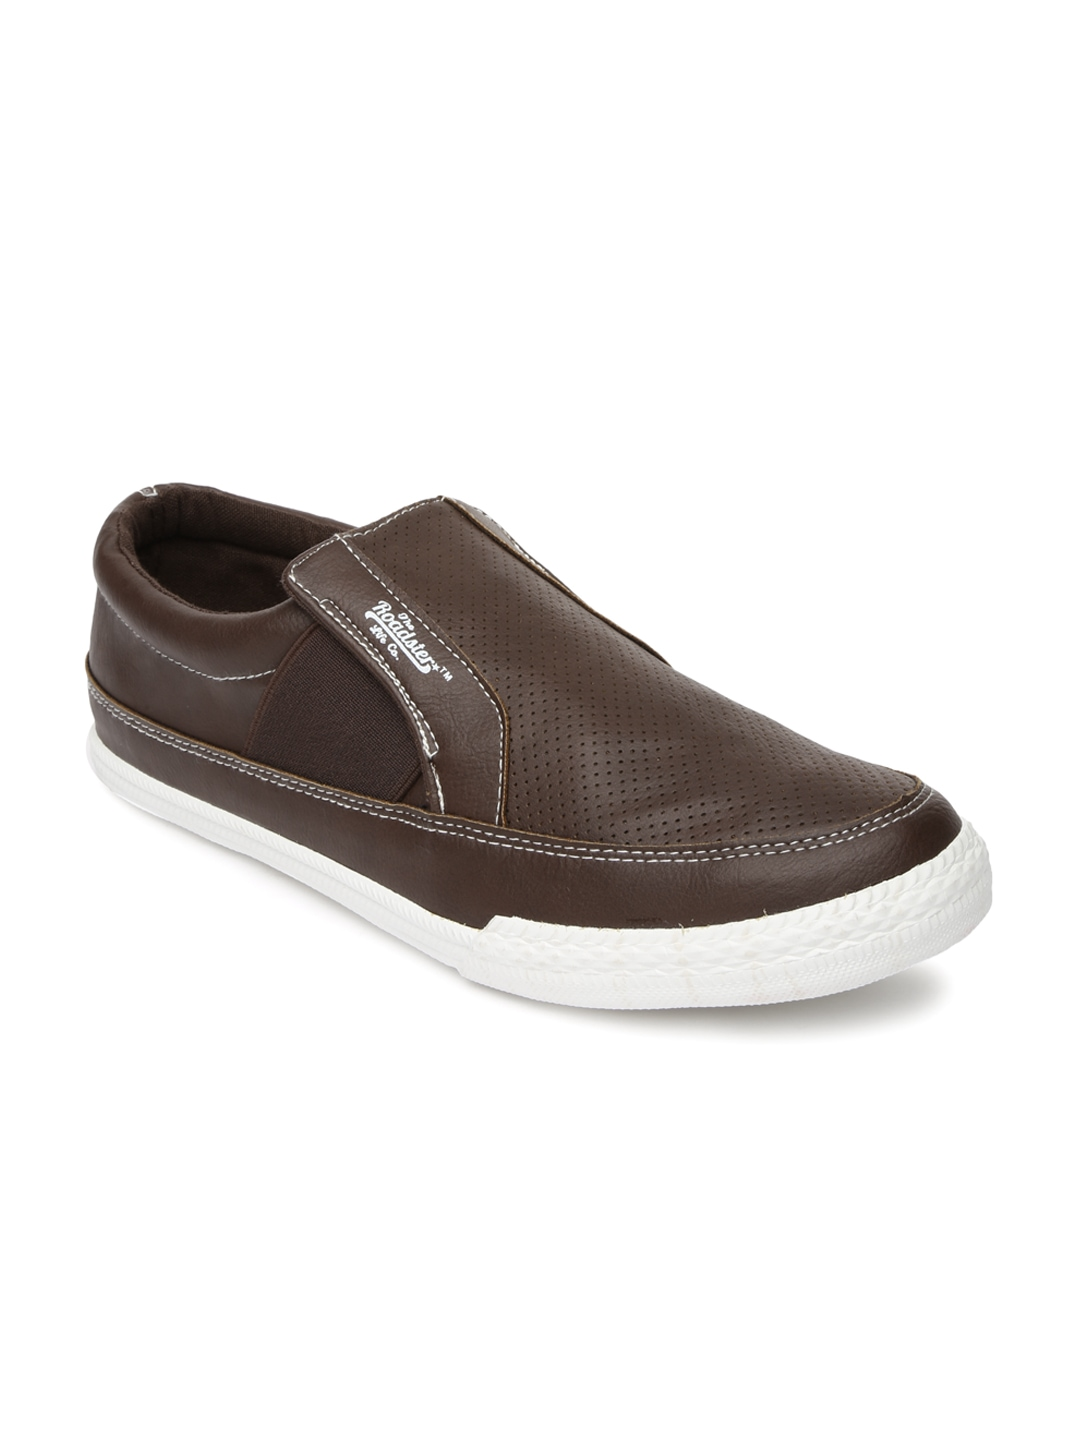 myntra roadster brown casual shoes 744622 buy myntra